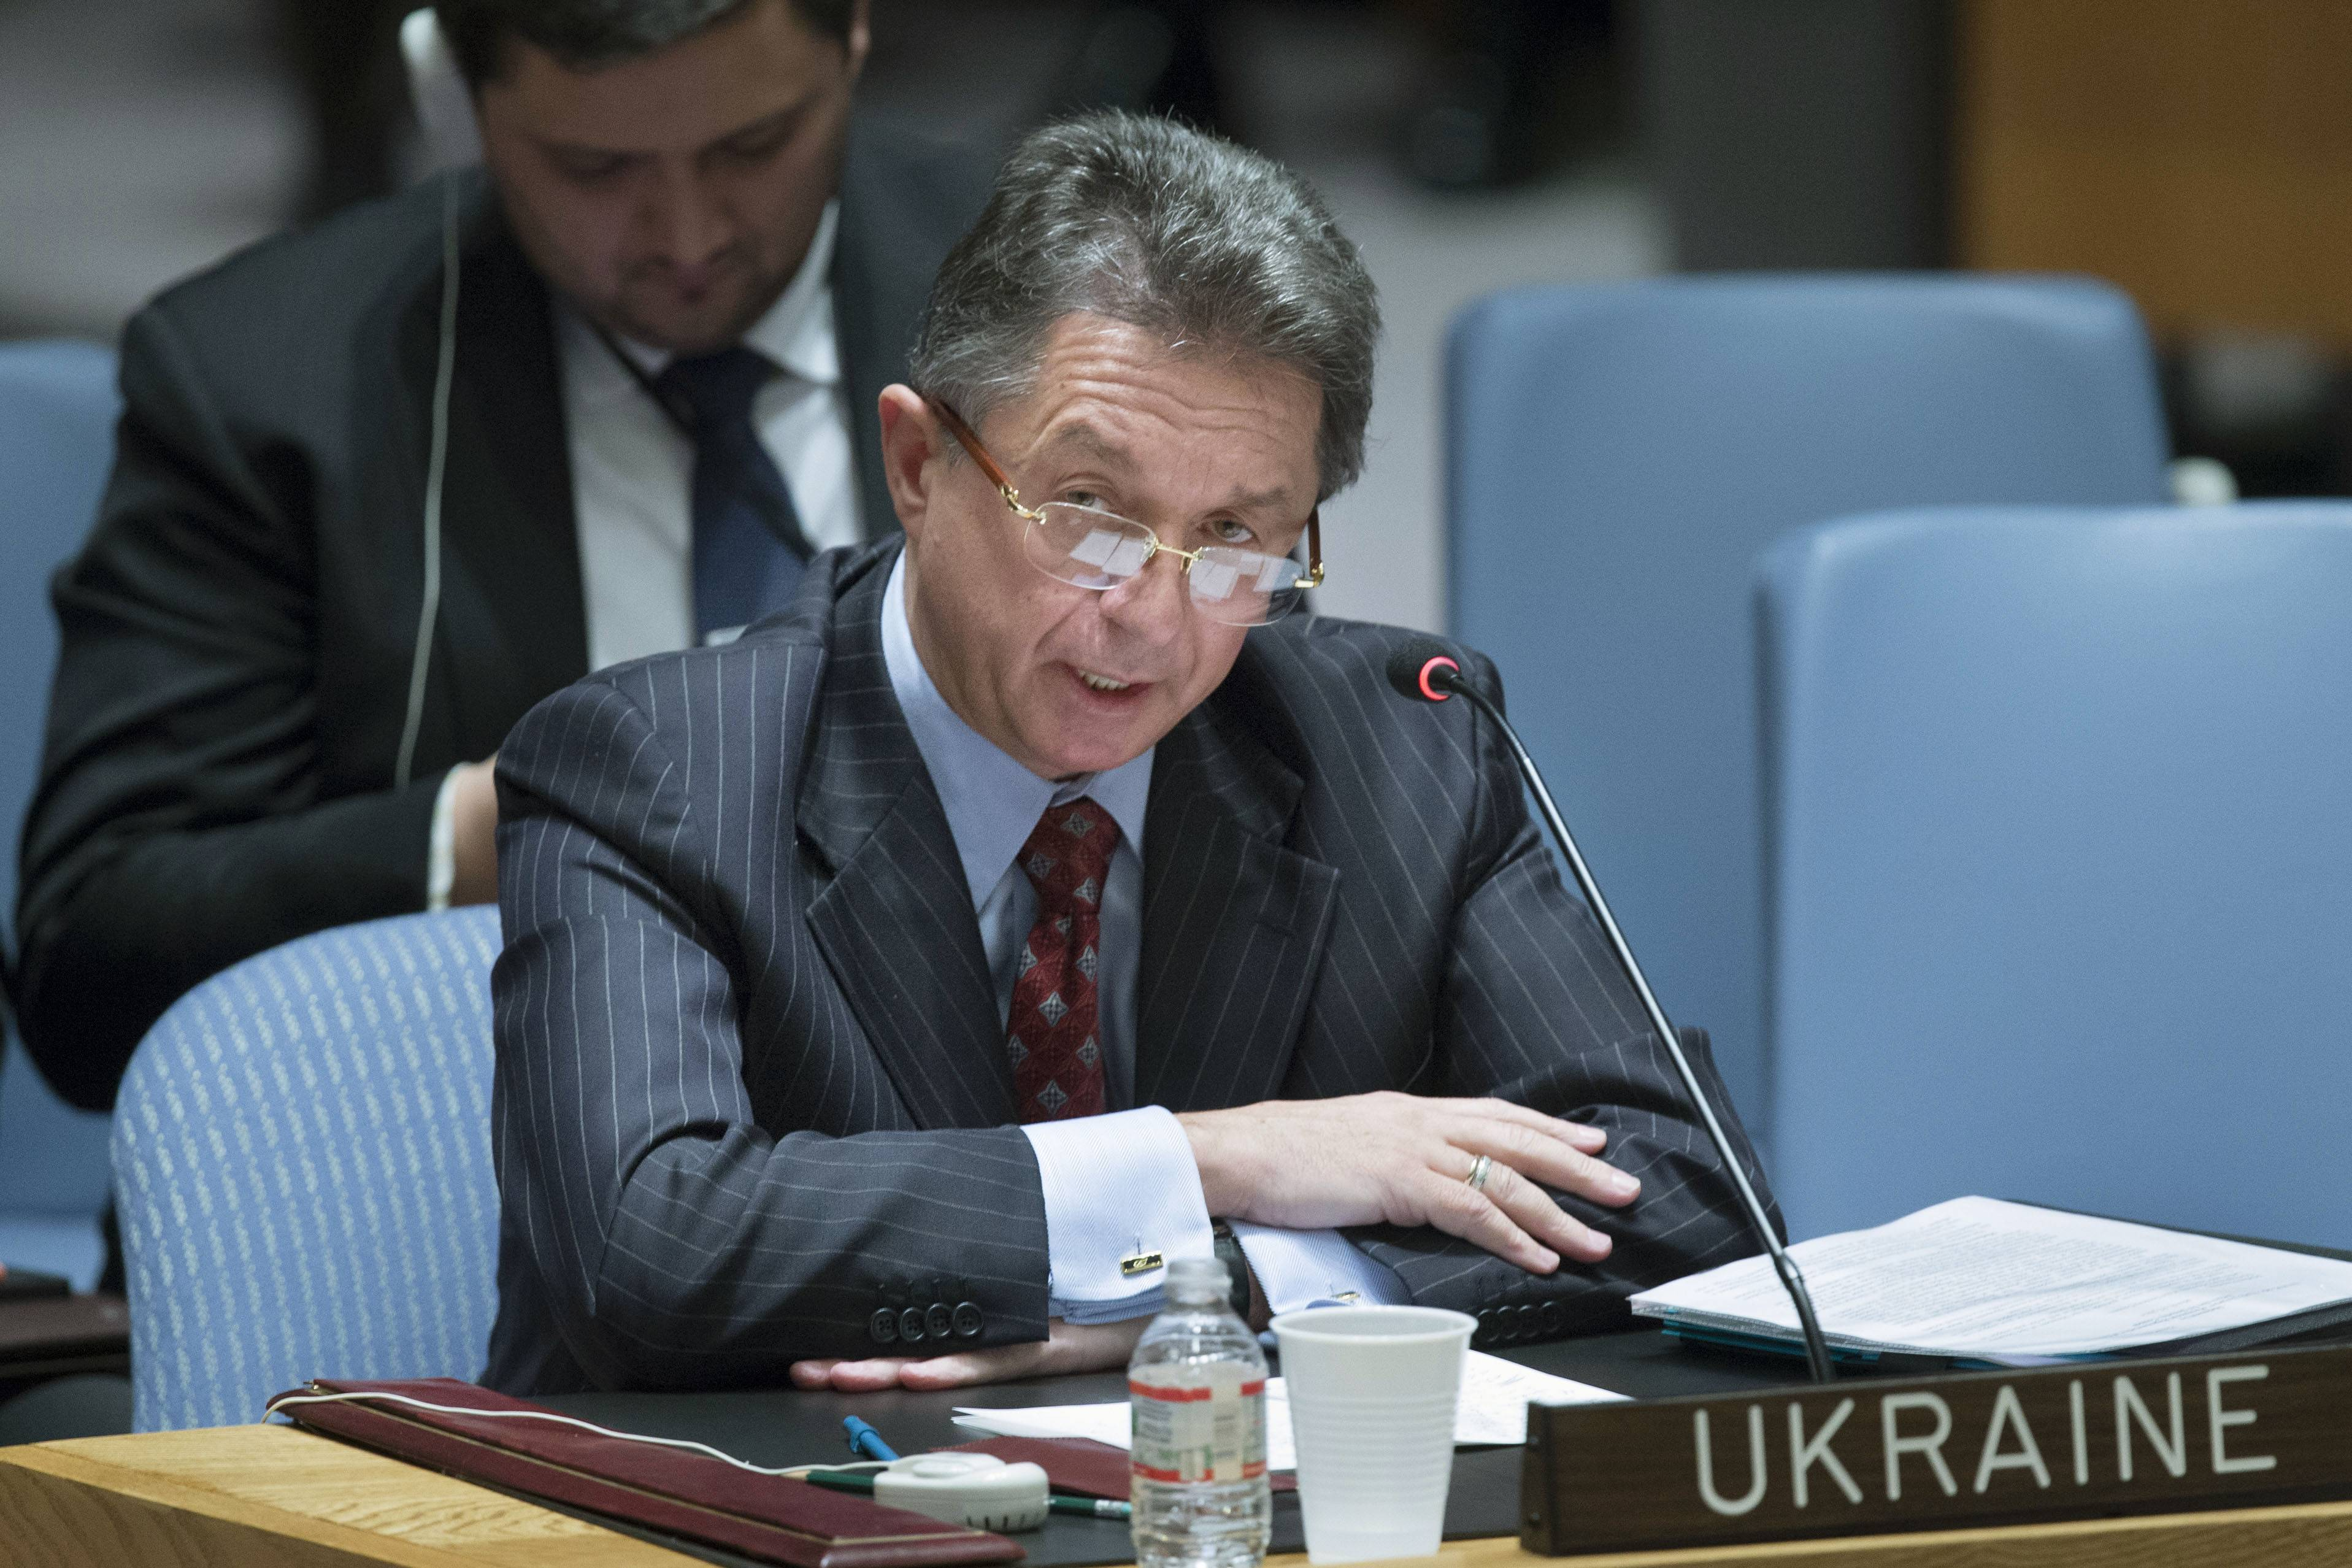 Ukraine's U.N. Ambassador Yuriy Sergeyev speaks during an U.N. Security Council meeting on the Ukraine crisis, Saturday, March 15, at the United Nations headquarters. Russia vetoed a U.N. resolution declaring Sunday's referendum on the future of Ukraine's Crimean Peninsula illegal, but its close ally China abstained in a show of Moscow's isolation. Supporters of the U.S.-sponsored resolution knew that Russia would use its veto, but they put the resolution to a vote Saturday morning to show the strength of opposition to Moscow's takeover of Crimea.